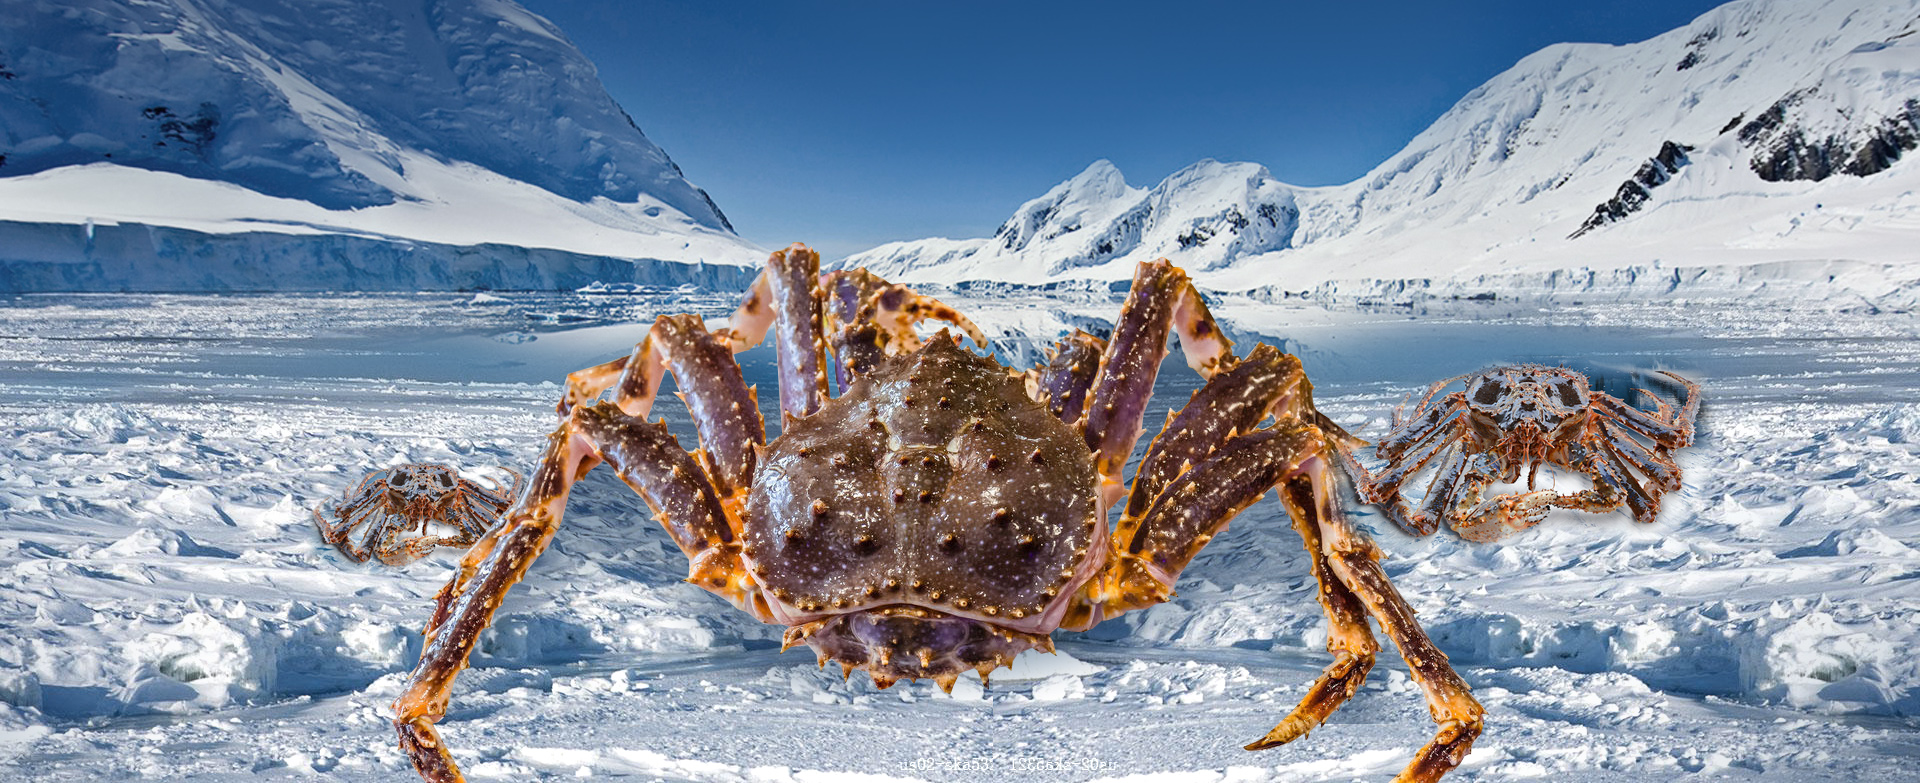 Imported seafood king crab